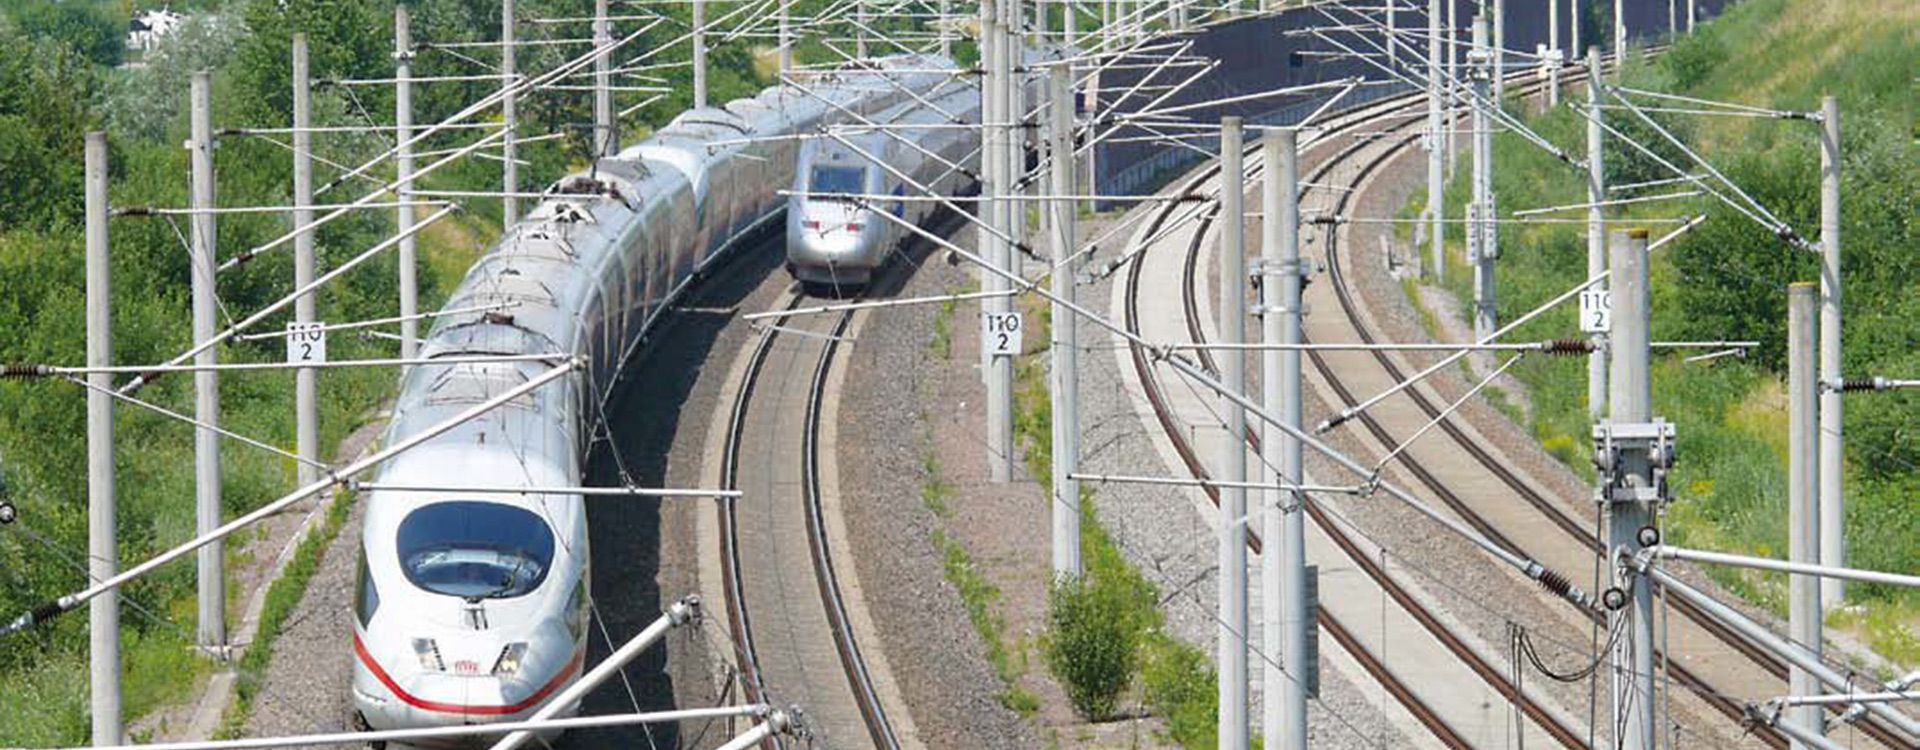 Rails and trains at the Karlsruhe-Basel line, Rotterdam-Cologne-Basel-Genoa freight corridor. | WSP